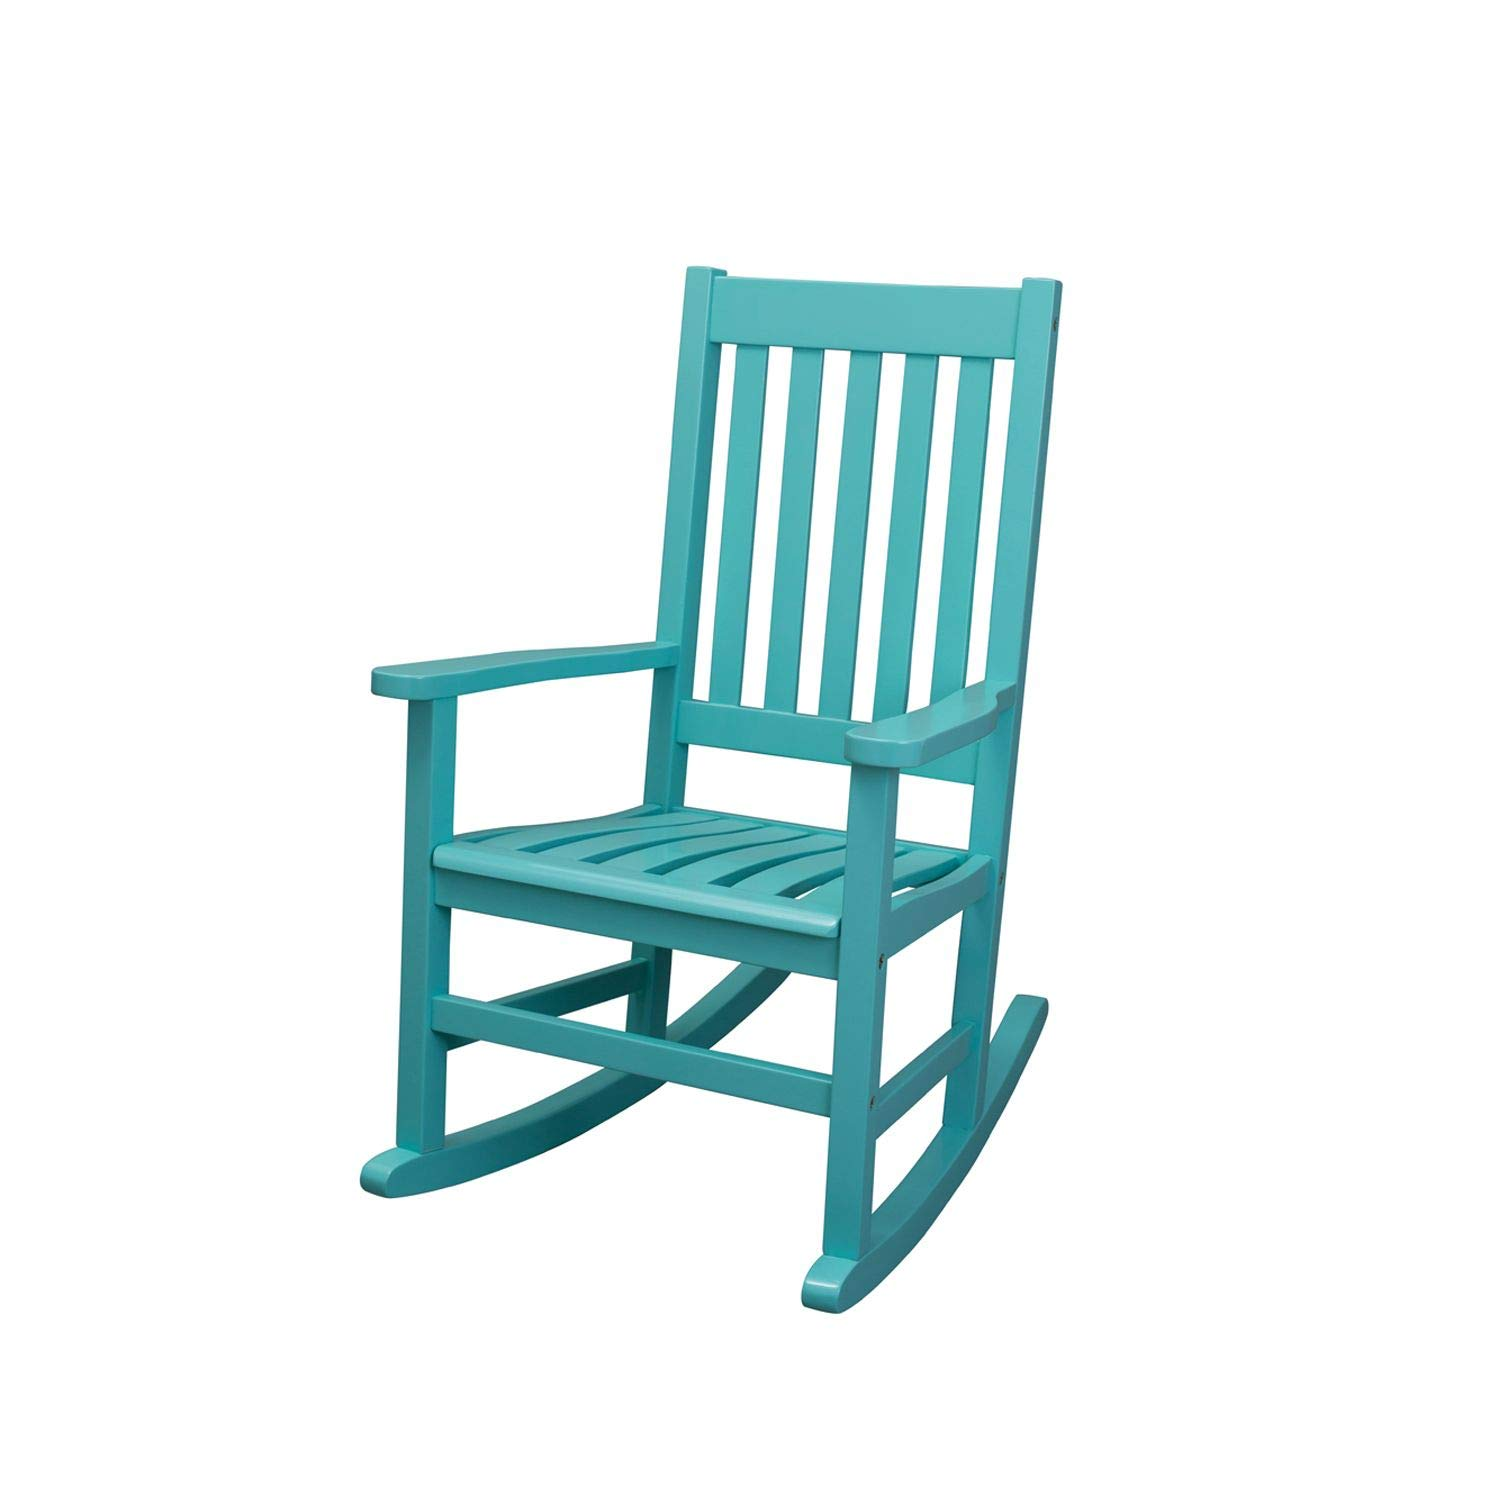 Pleasing Kids Rocking Chair In Blue Dailytribune Chair Design For Home Dailytribuneorg